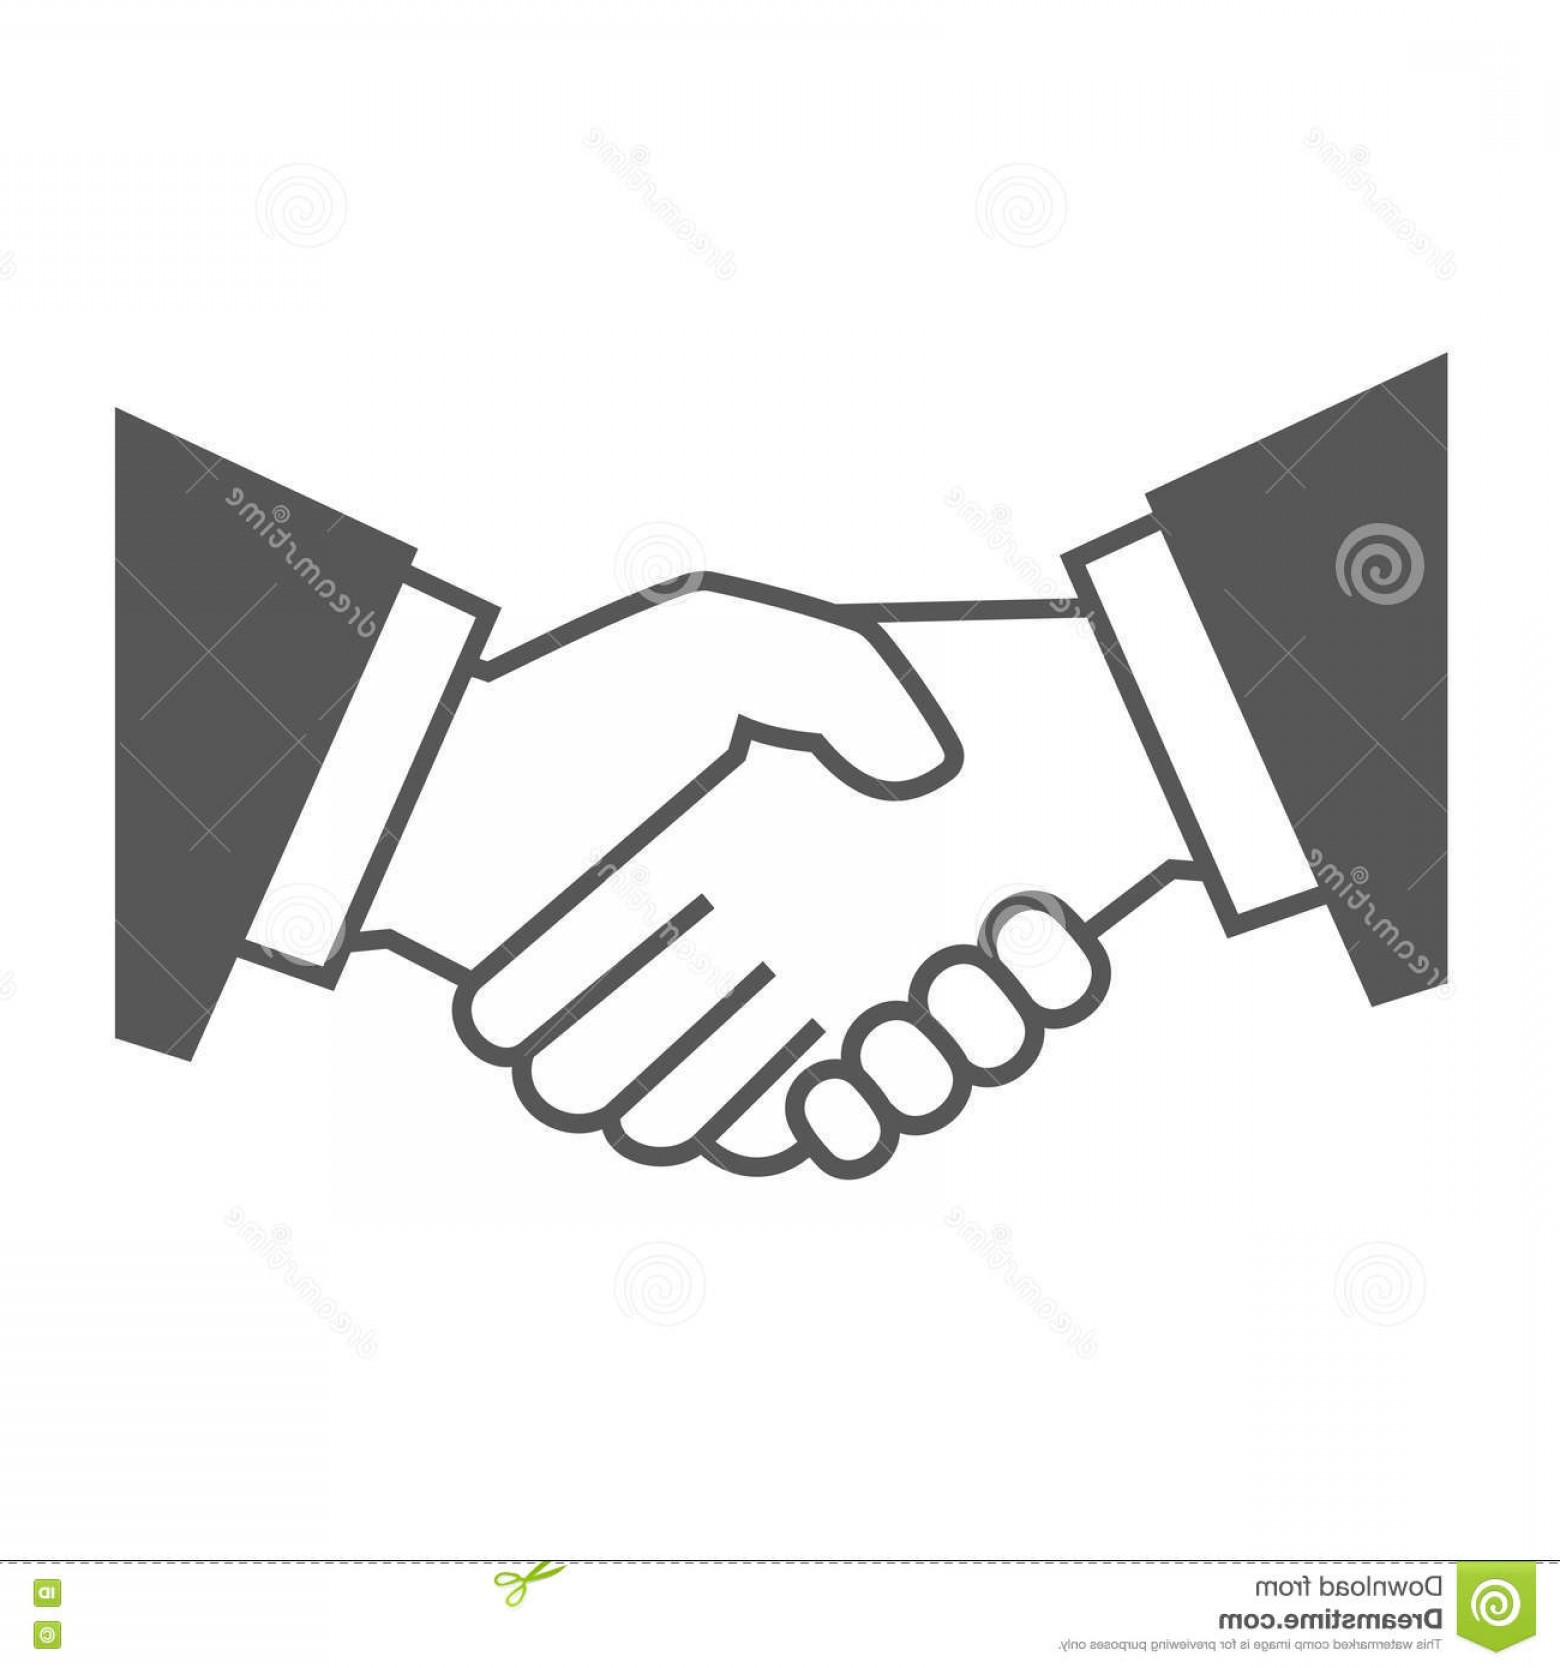 Handshake Clip Art Vector: Stock Illustration Gray Handshake Icon White Background Vector Illustration Image